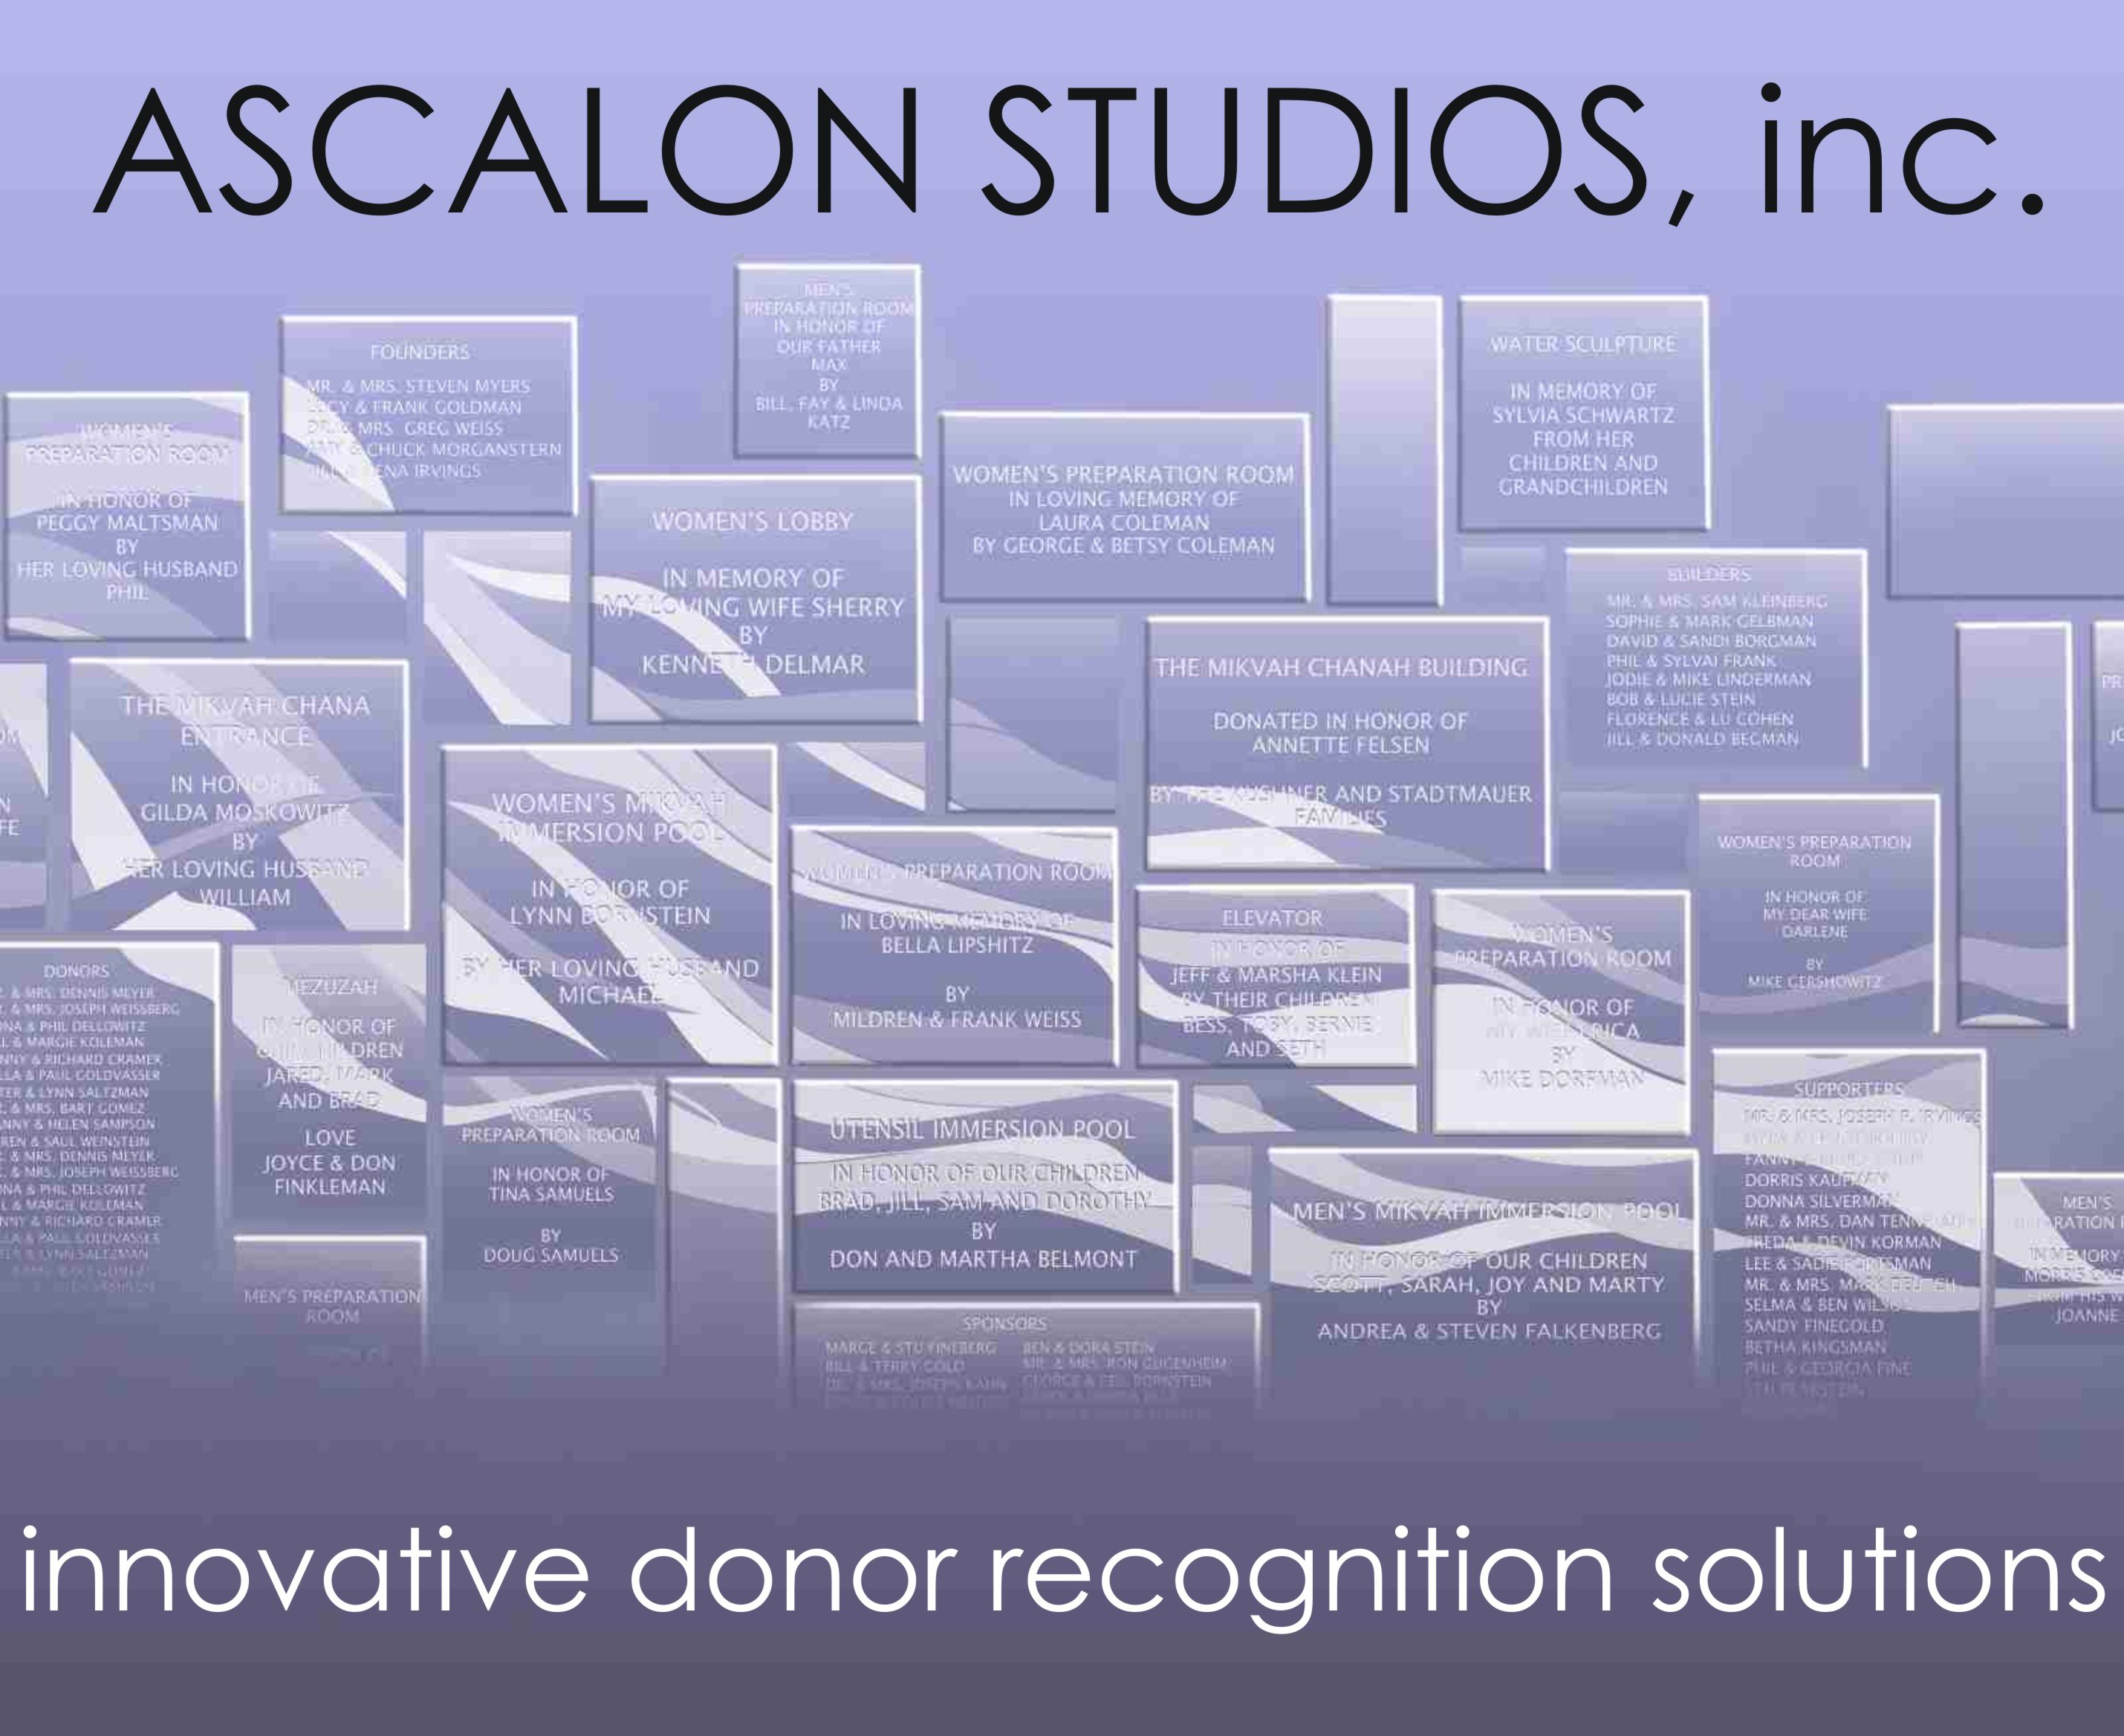 Ascalon Studios, Innovative Donor Recognition